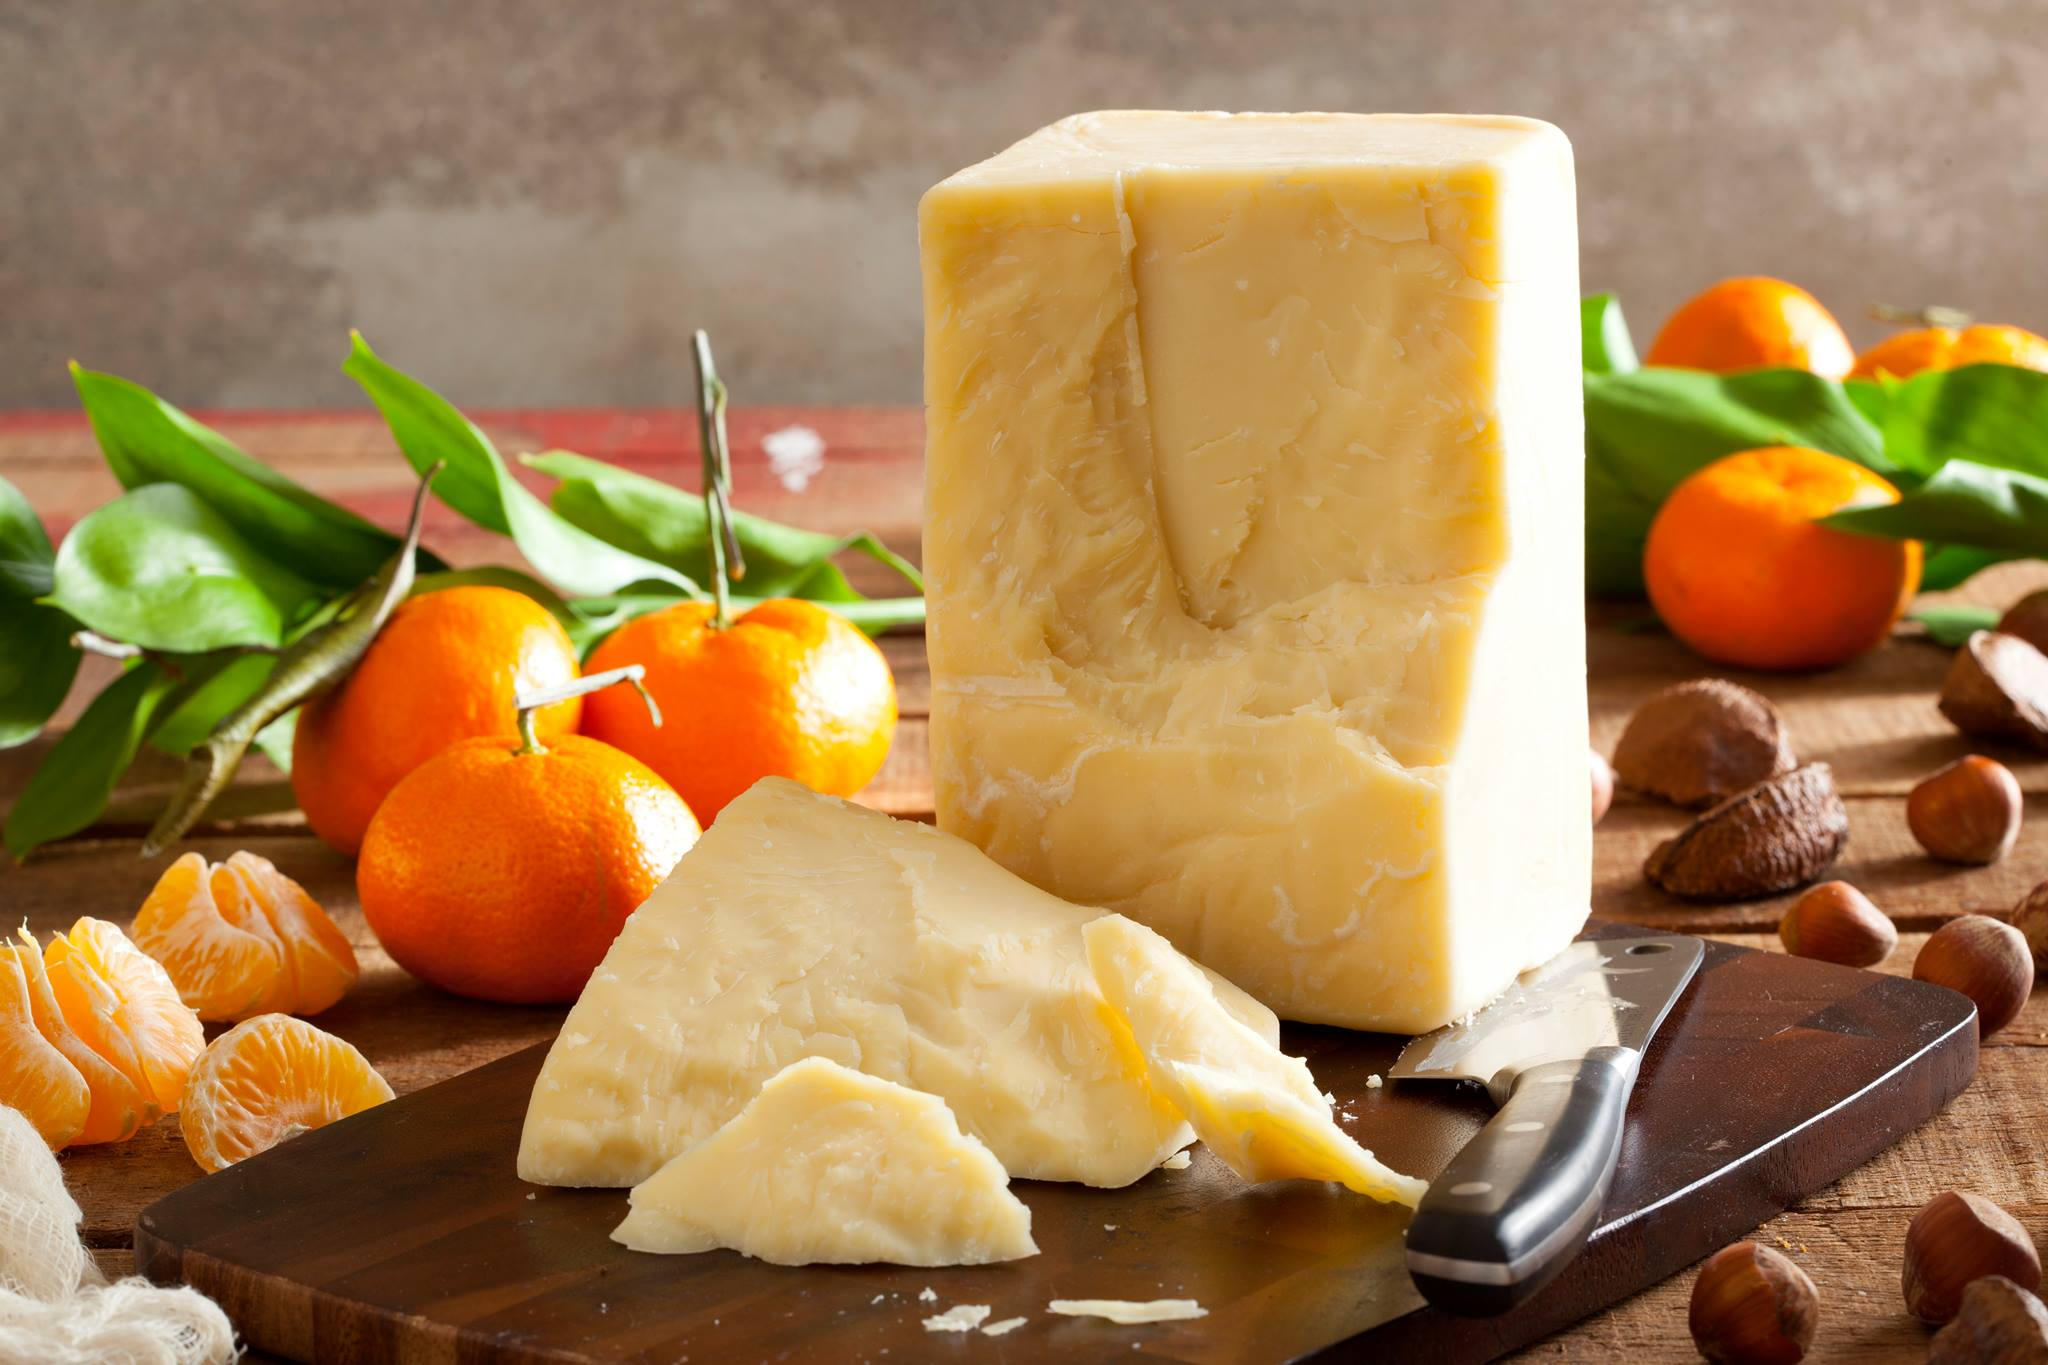 Aged Cheddar - A fine aged artisan Cheddar from Wisconsin.Aged for at least 17 months, this cheddar has won numerous international awards.$7.40 per 100g